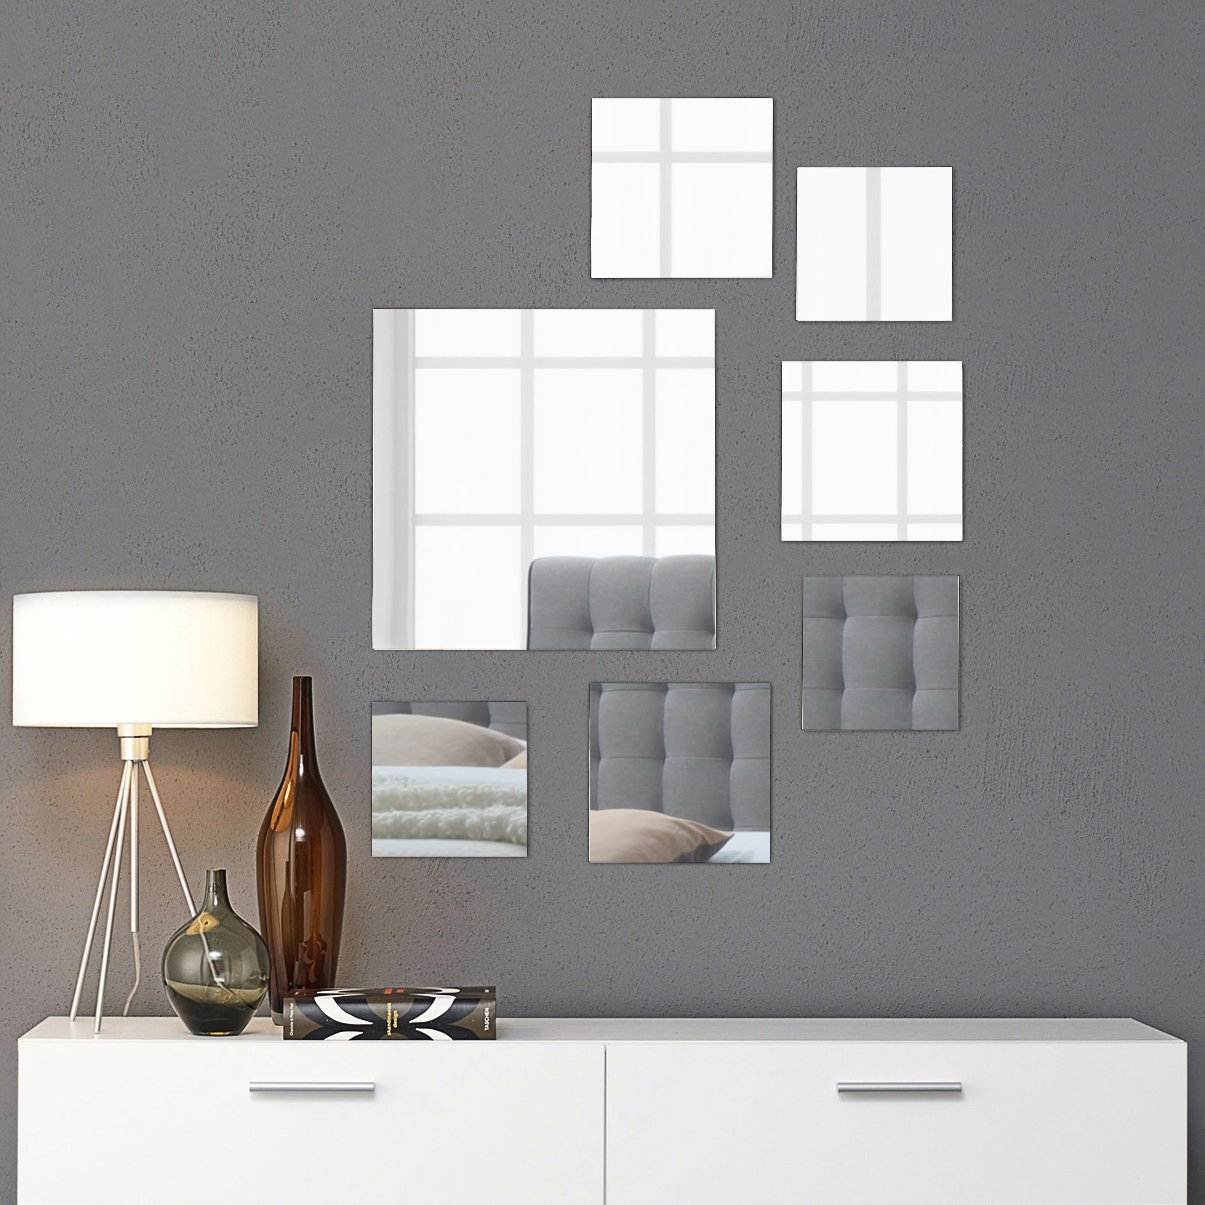 Light In the Dark Square Mirror Decor Set - 7 Square Wall Mirrors in Assorted Sizes: Large, Medium and Small - Wall Decoration for Living Room, Bedroom or Bathroom